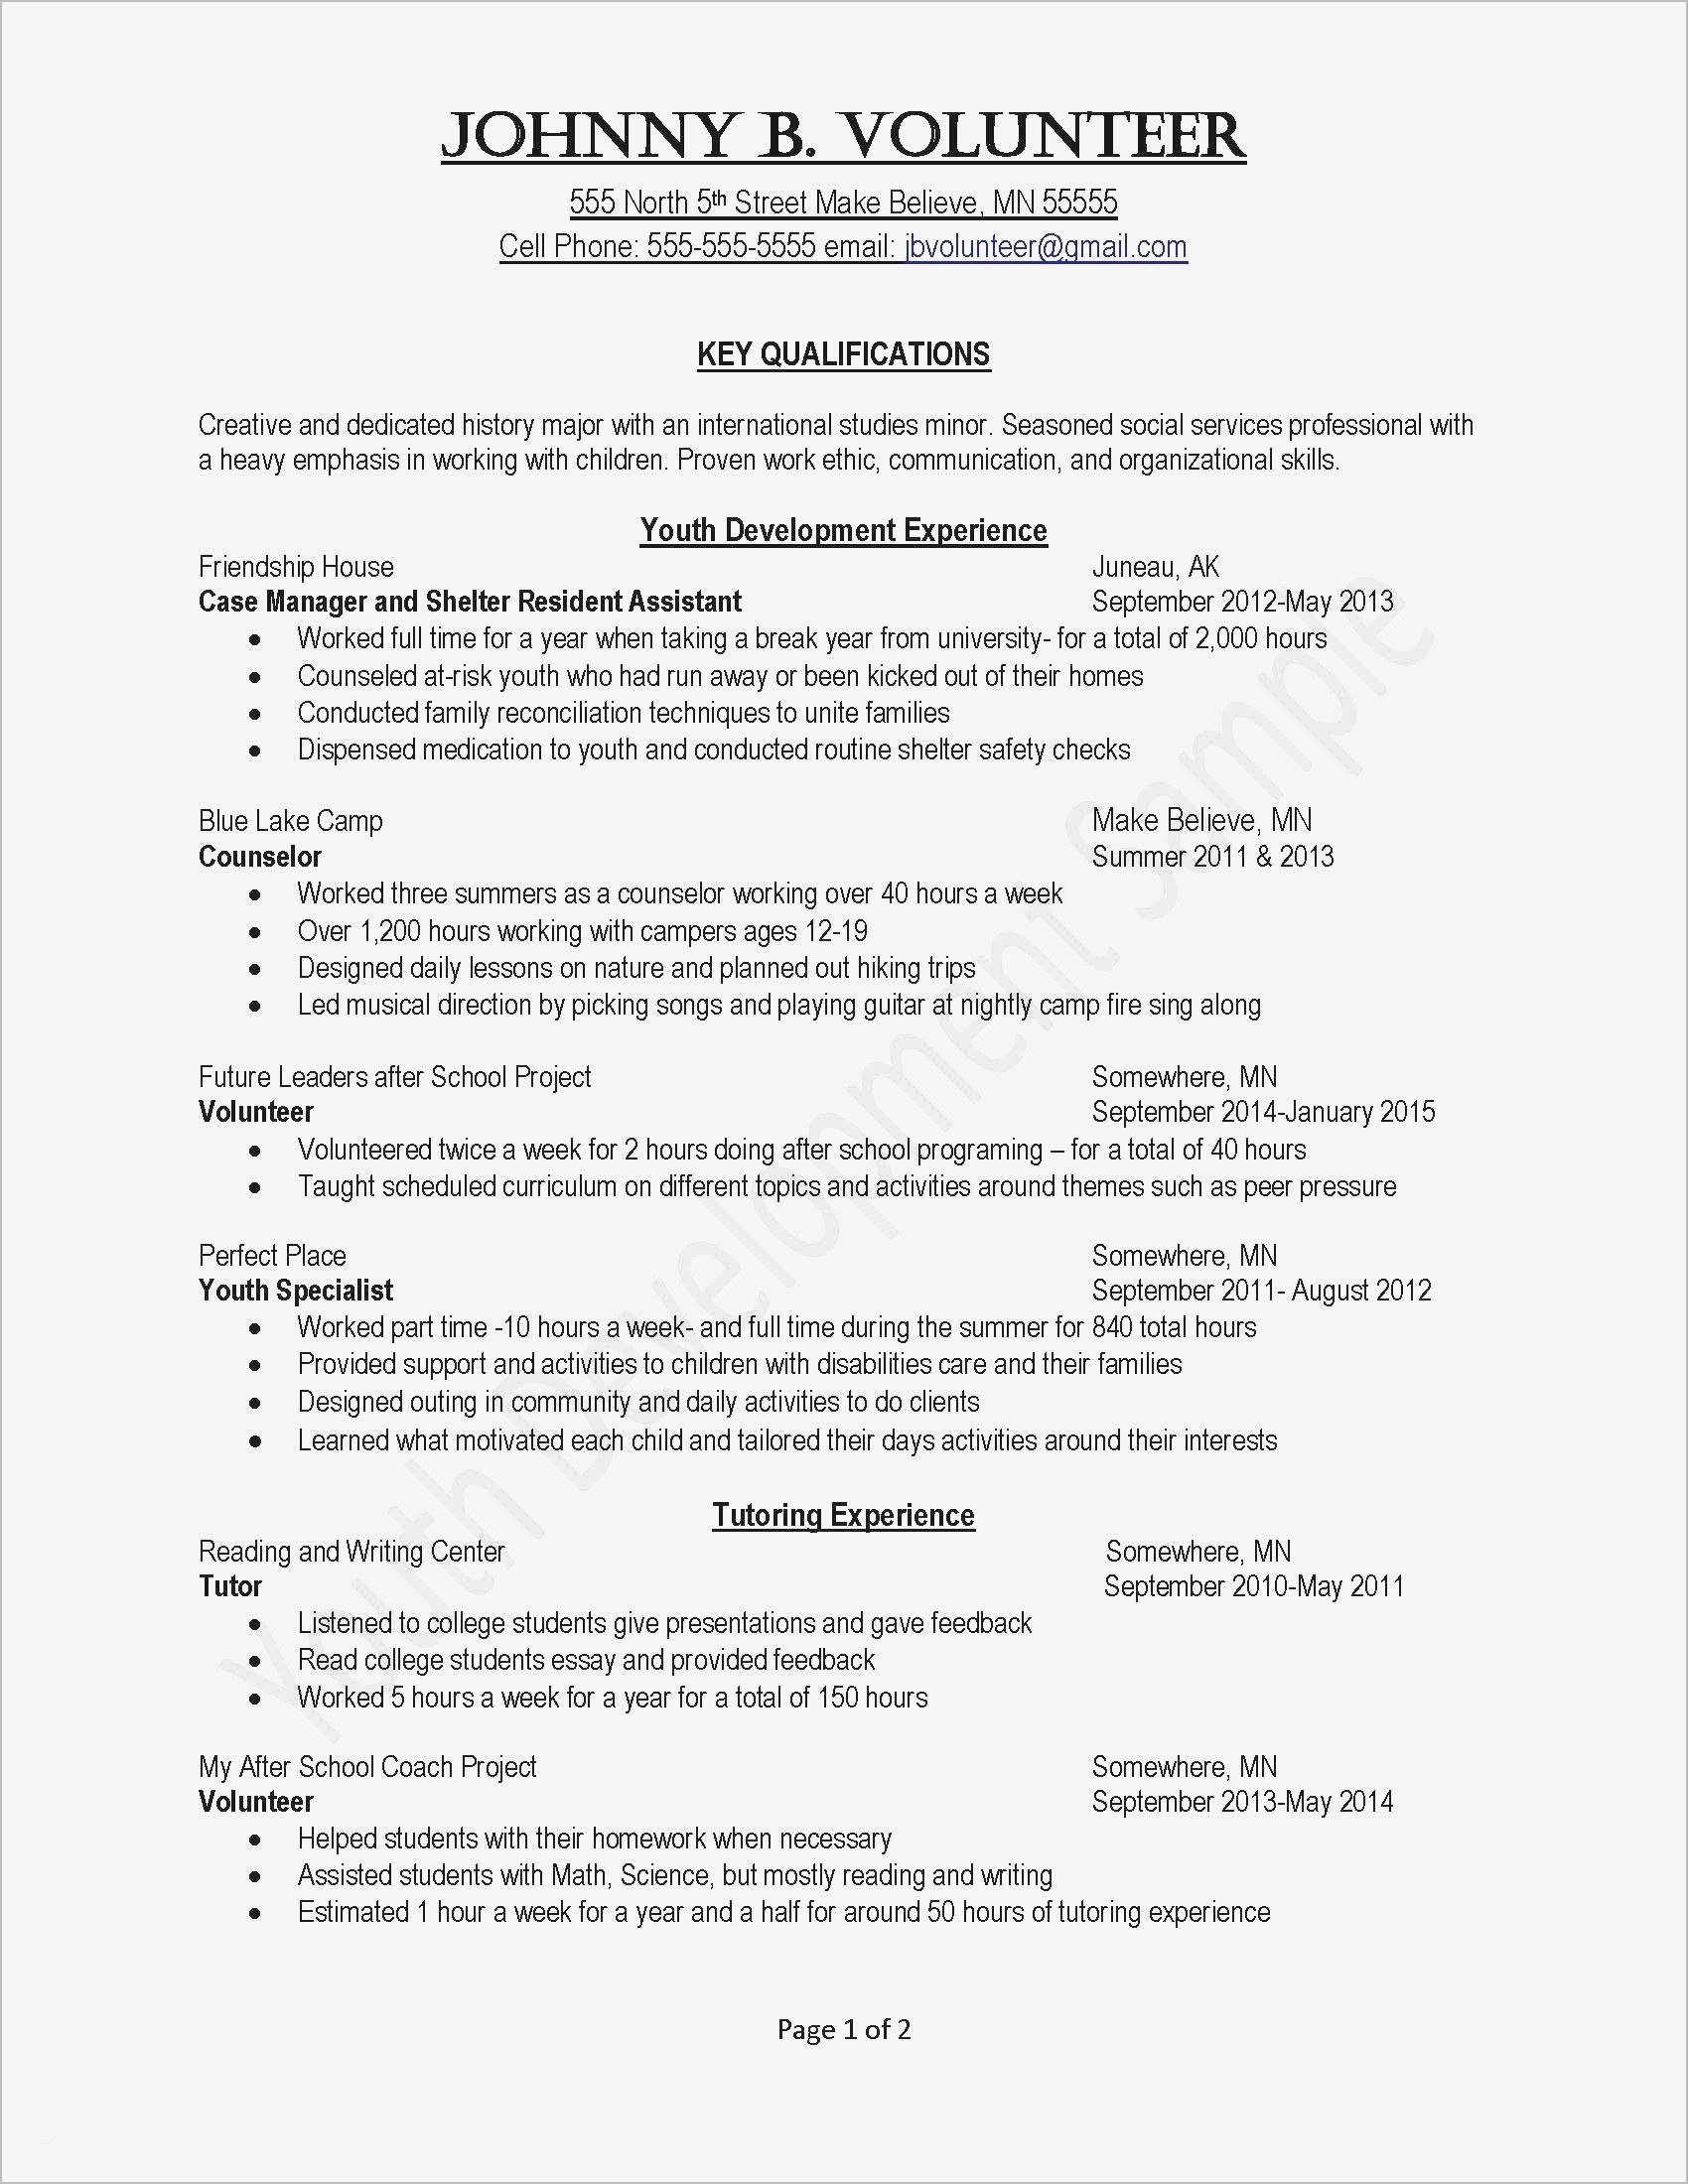 Resume Template for Scientist - Skill Based Resume Template Unique Job Fer Letter Template Us Copy